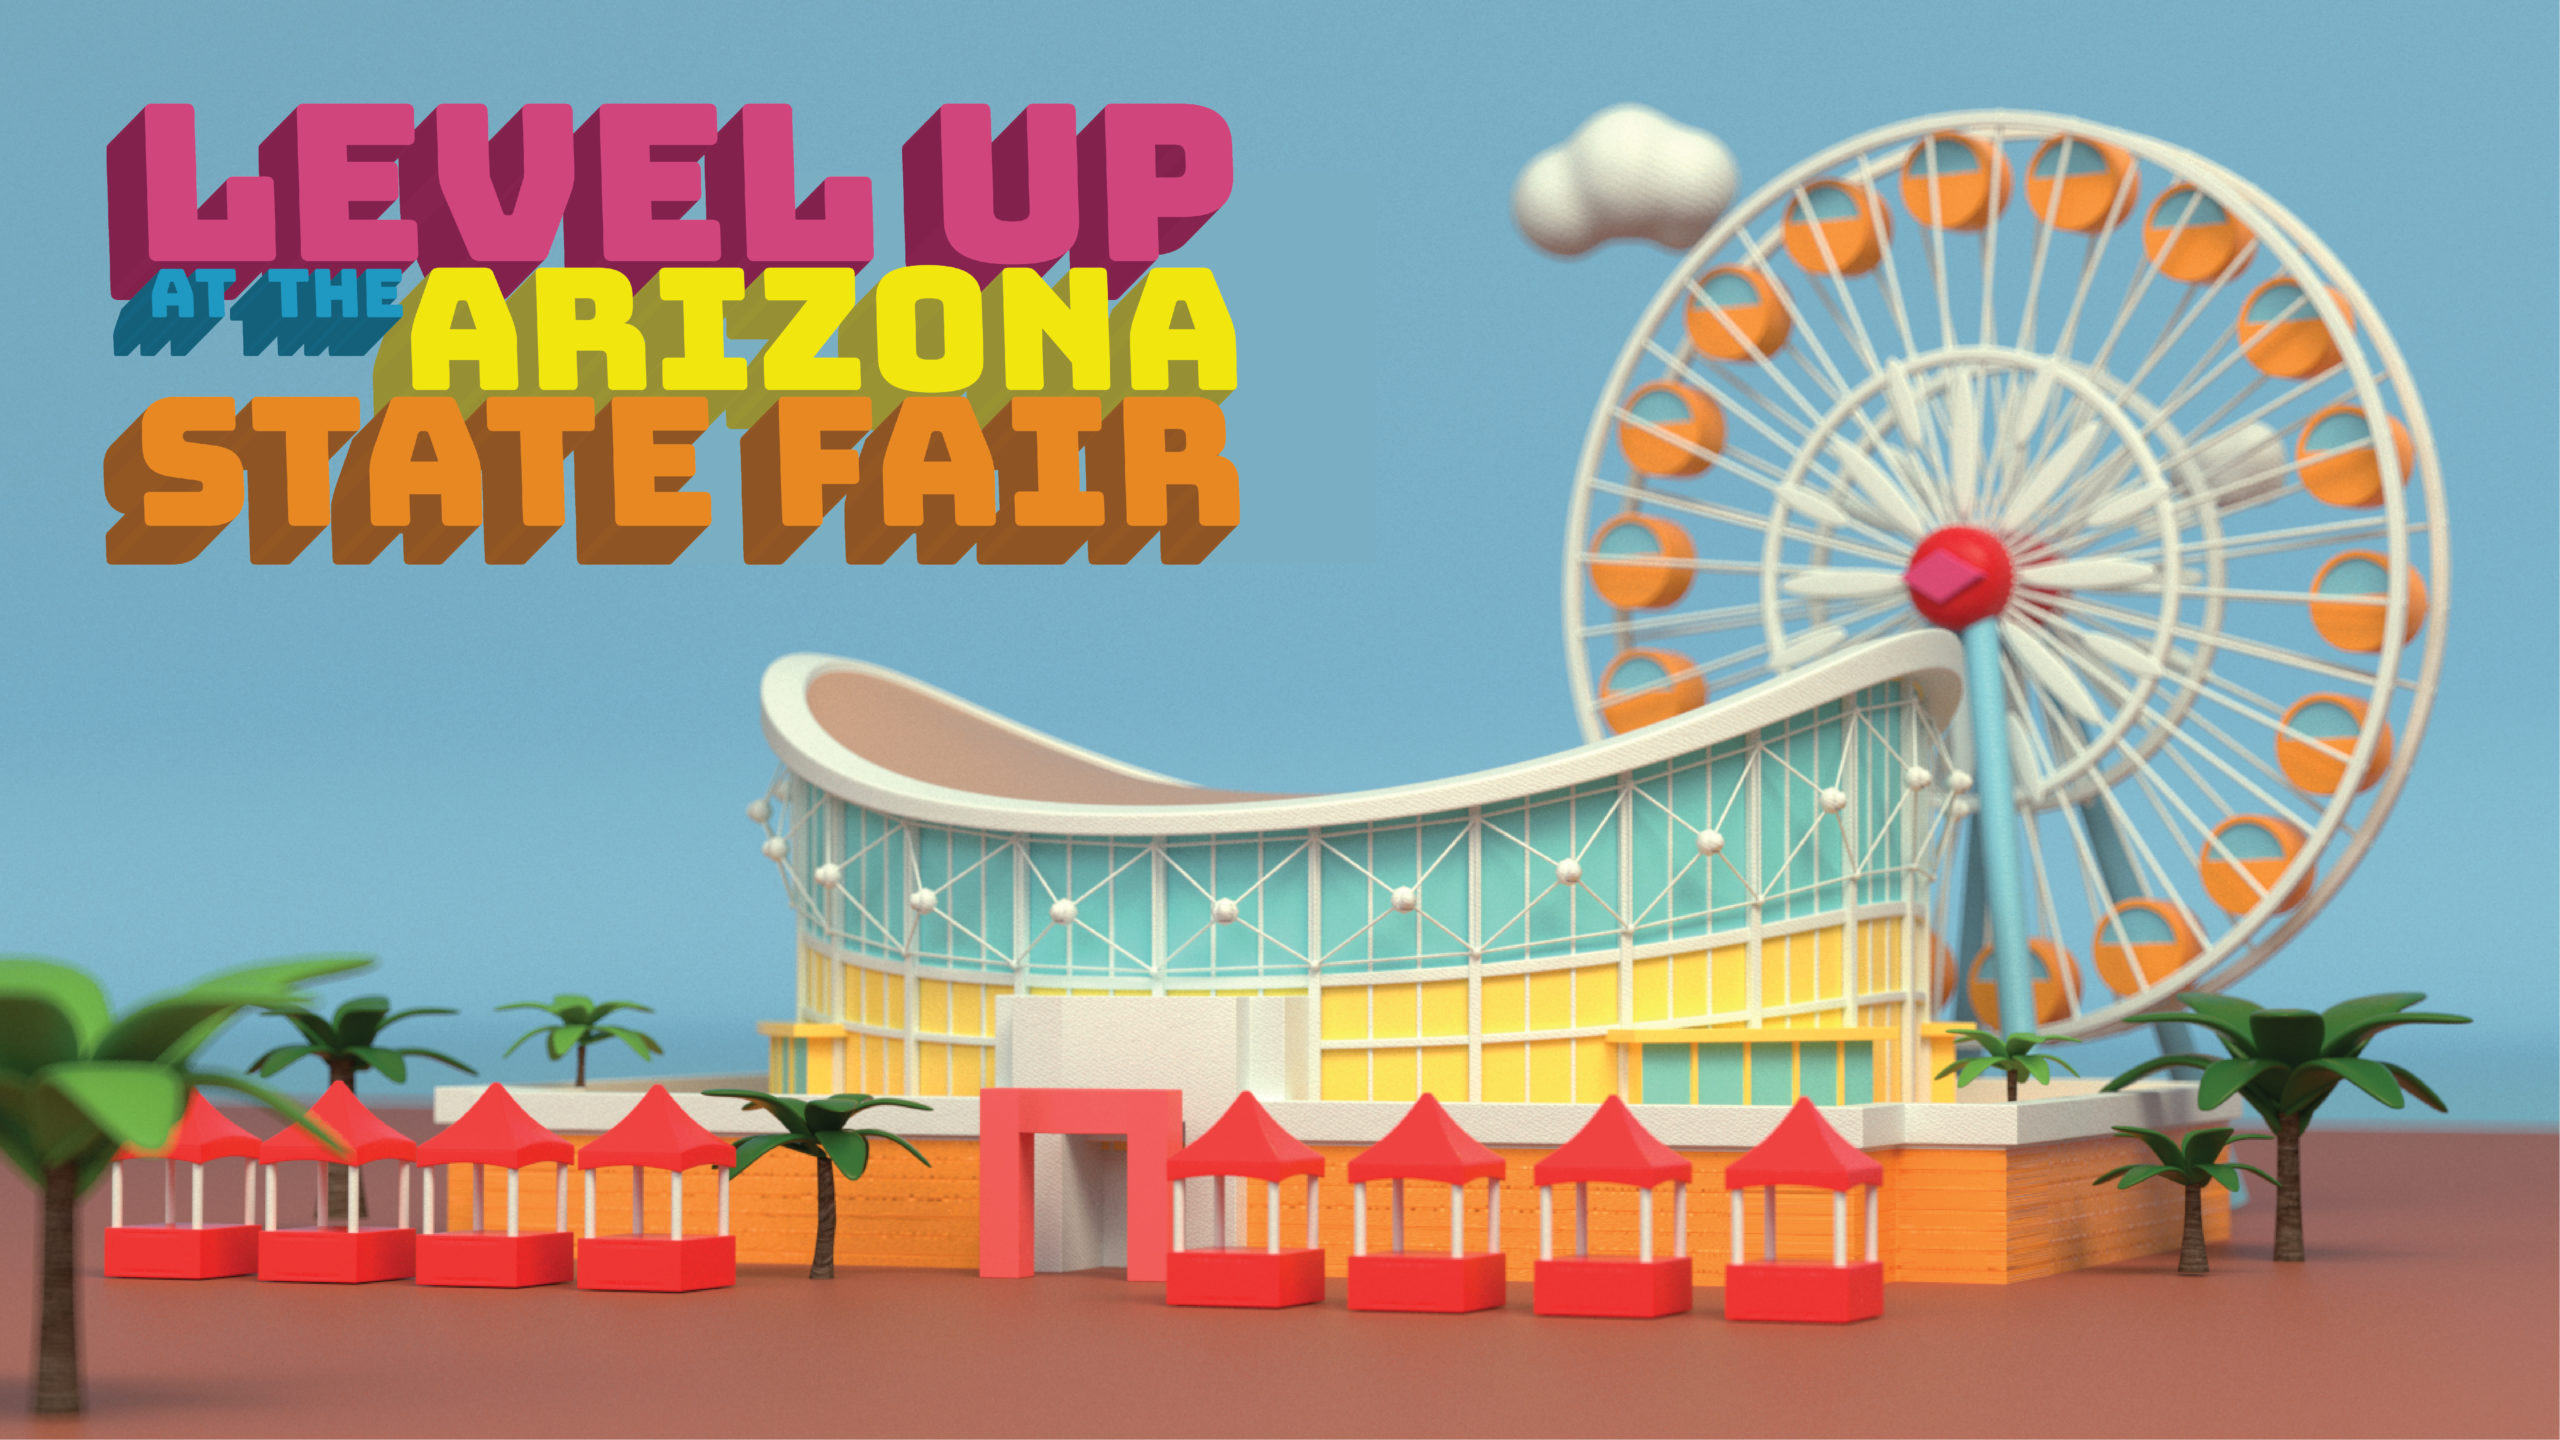 web landing page Level Up at the Arizona State Fair